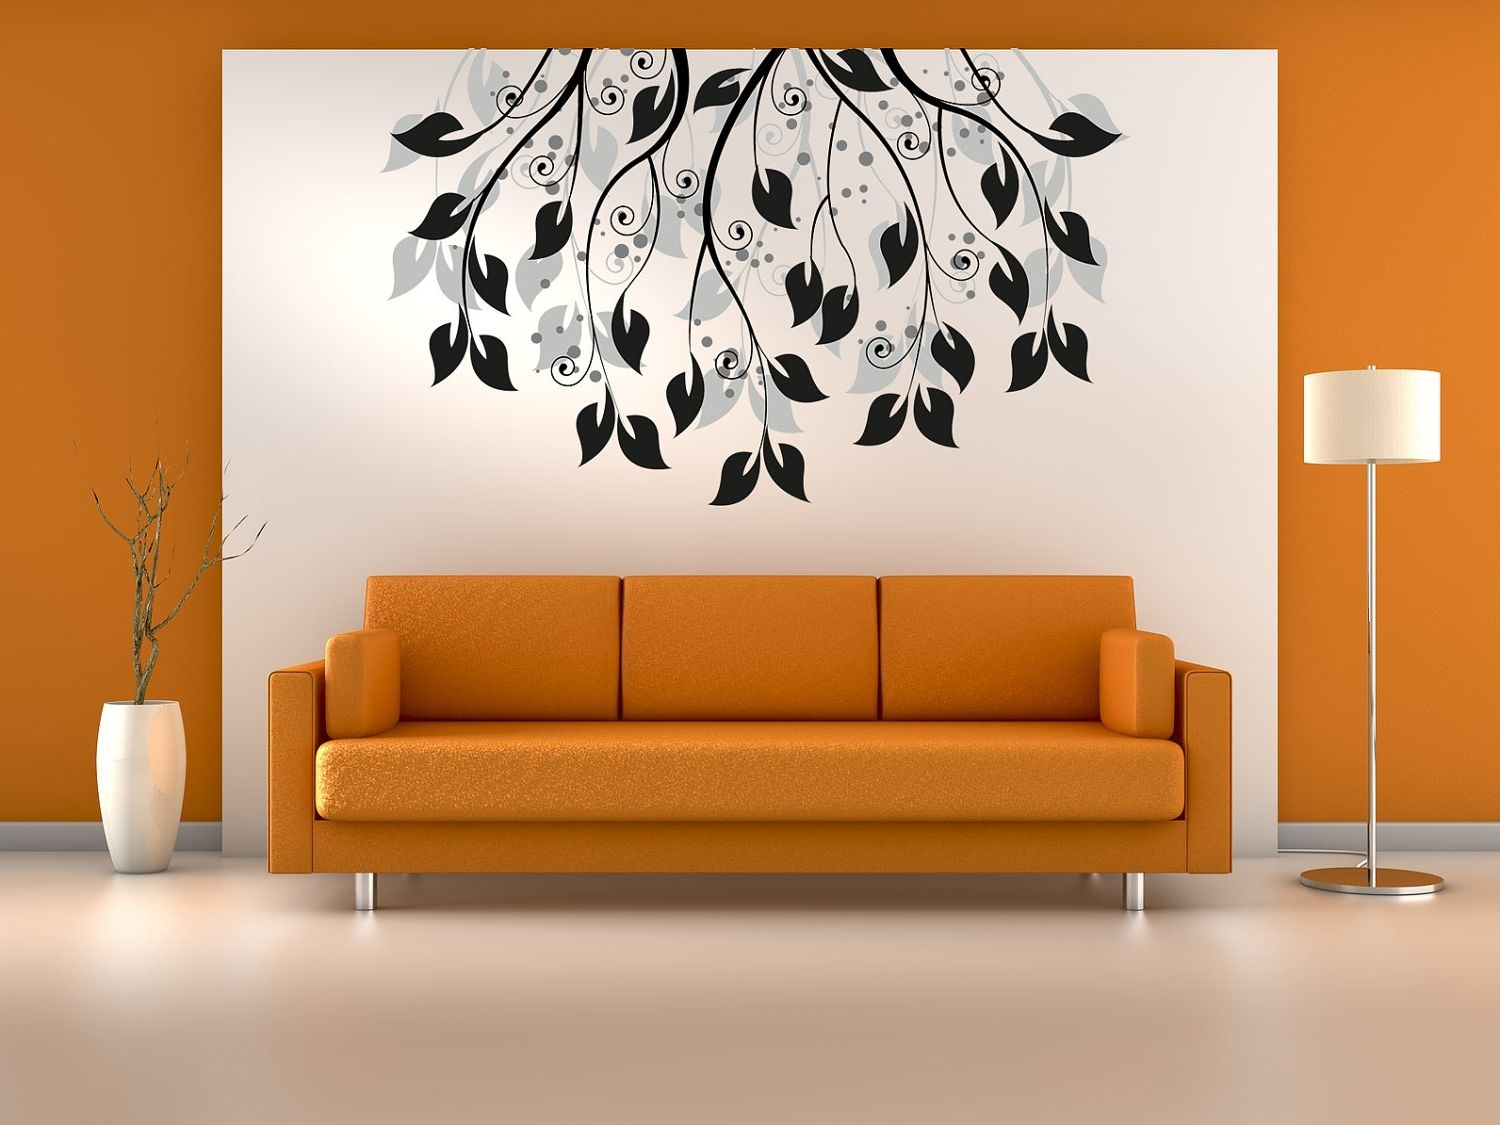 Living Room : Living Room Wall Decor Kitchen Utrails Home Design With Regard To Most Current Home Decor Wall Art (Gallery 16 of 20)